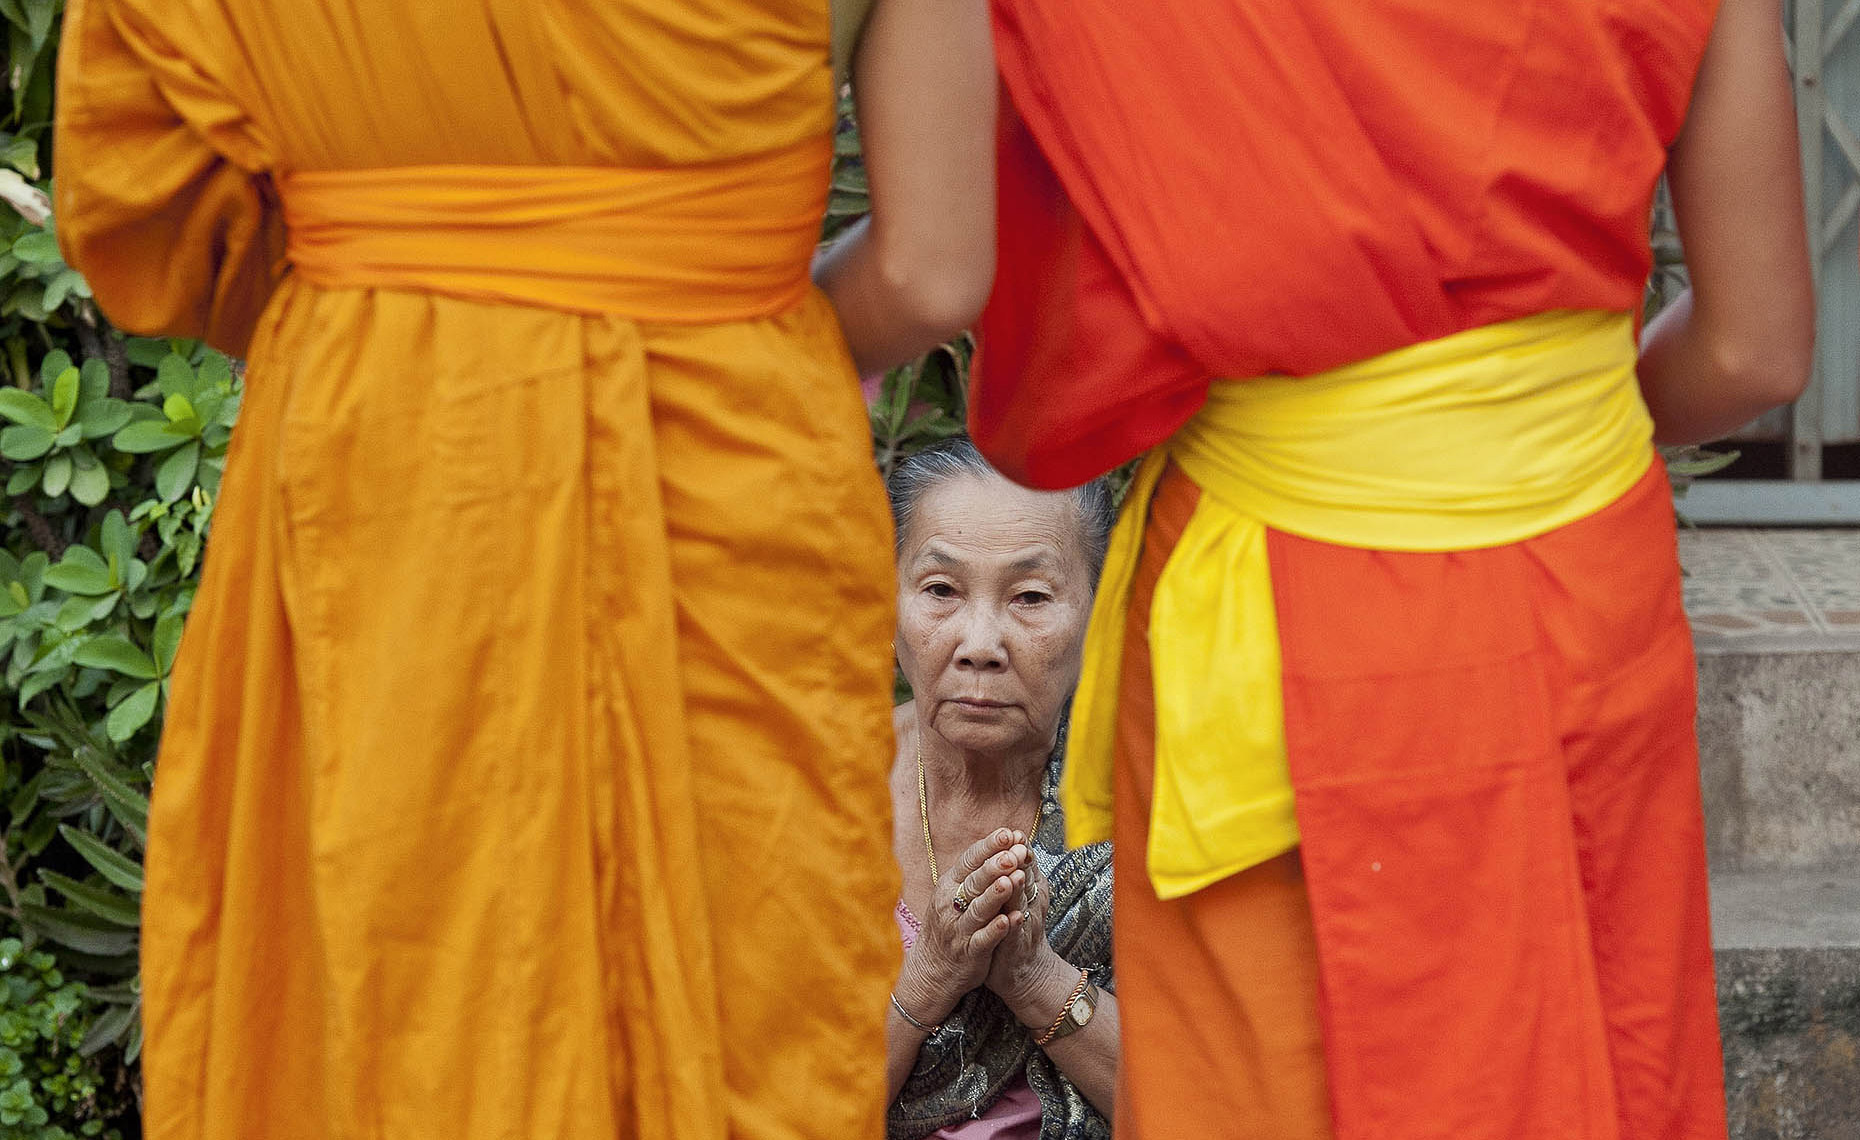 TRA_PhotoReporters_Woman-offers-prayers-to-monks-during-tak-bat-procession_Luang-Prabang_Laos